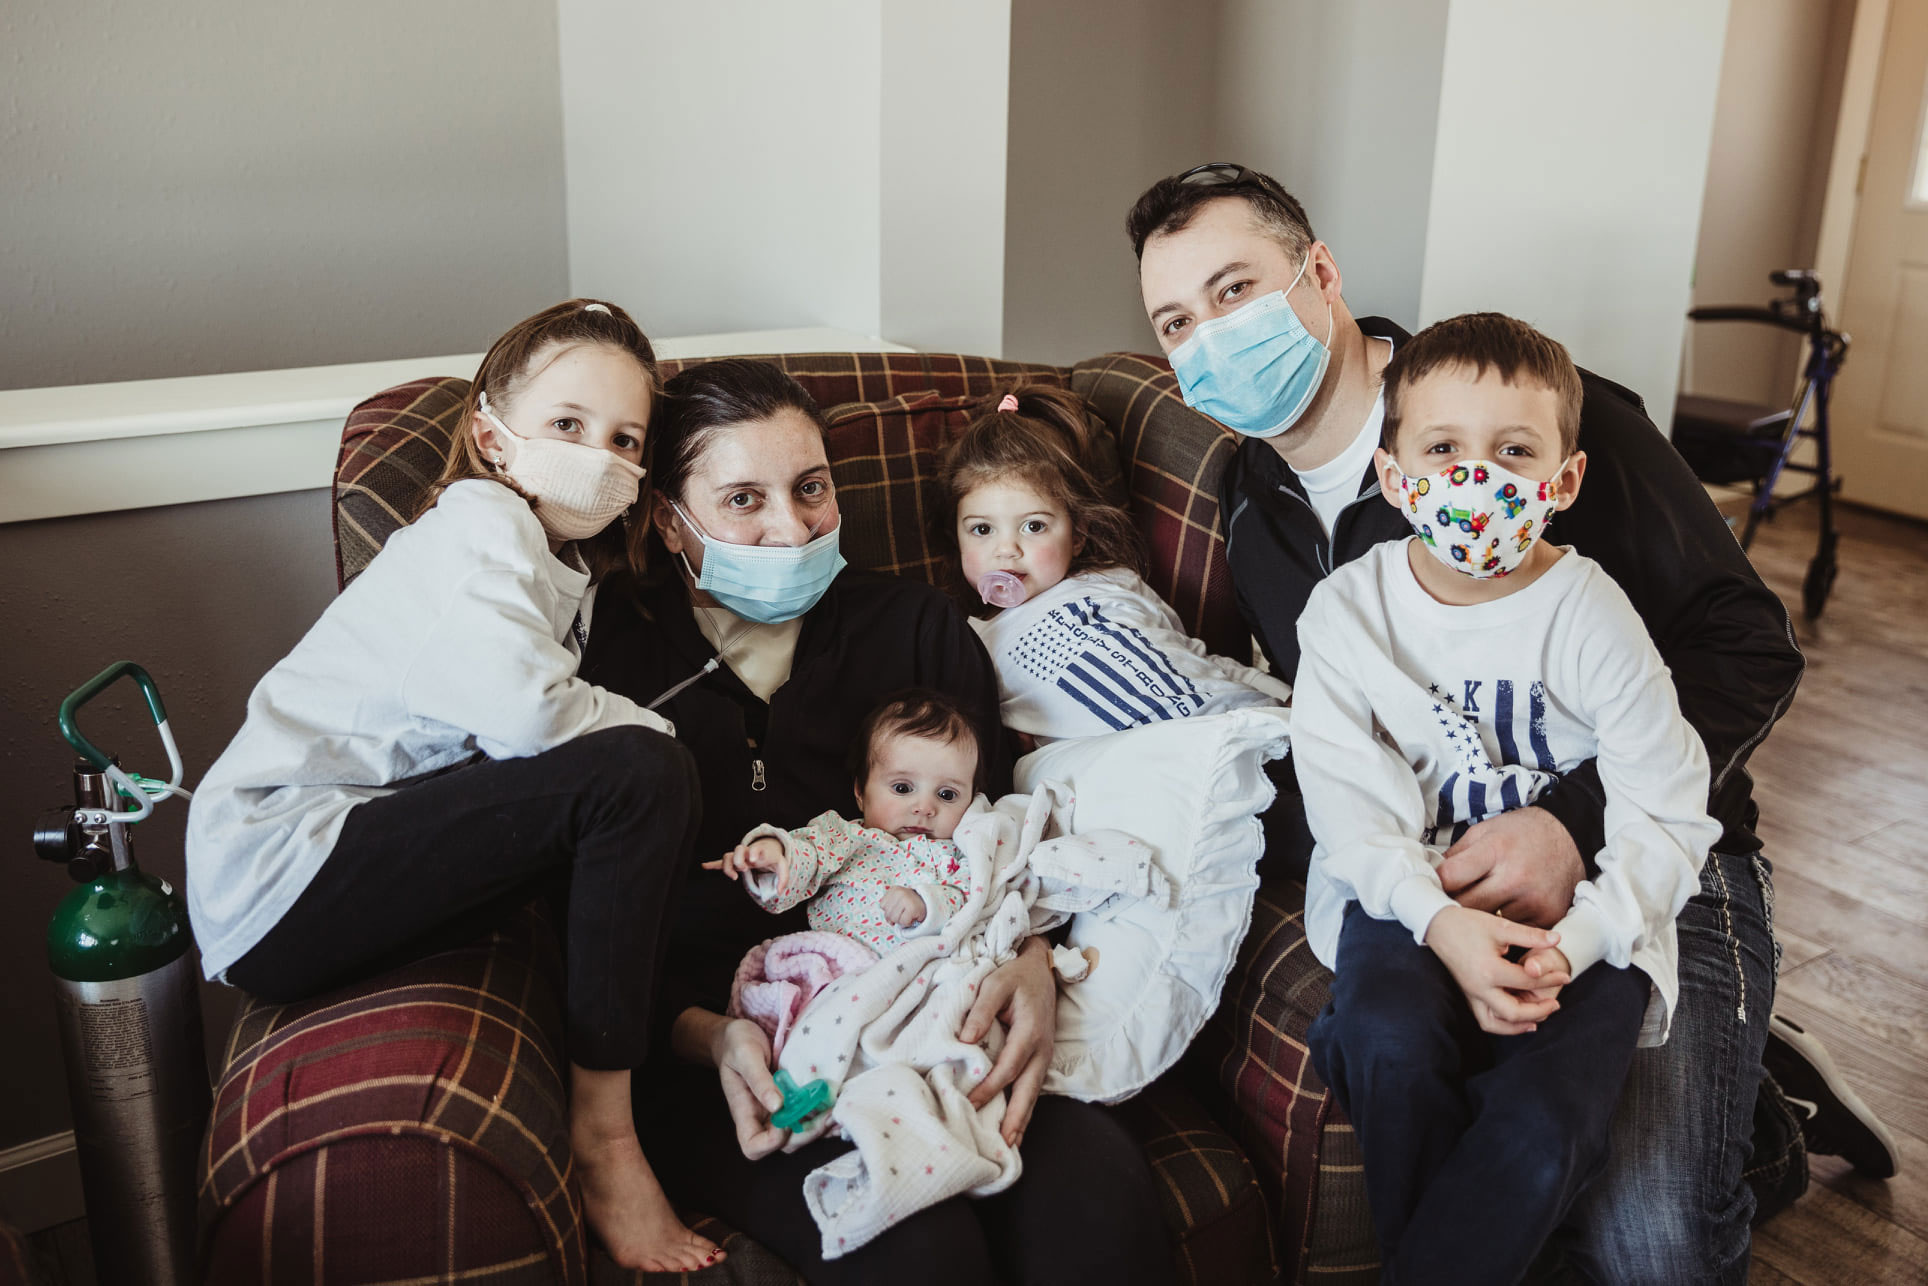 Kelsey Townsend, 32, was recently discharged from a hospital in Madison, Wisc., and reunited with her husband and four children, including her baby girl Lucy.